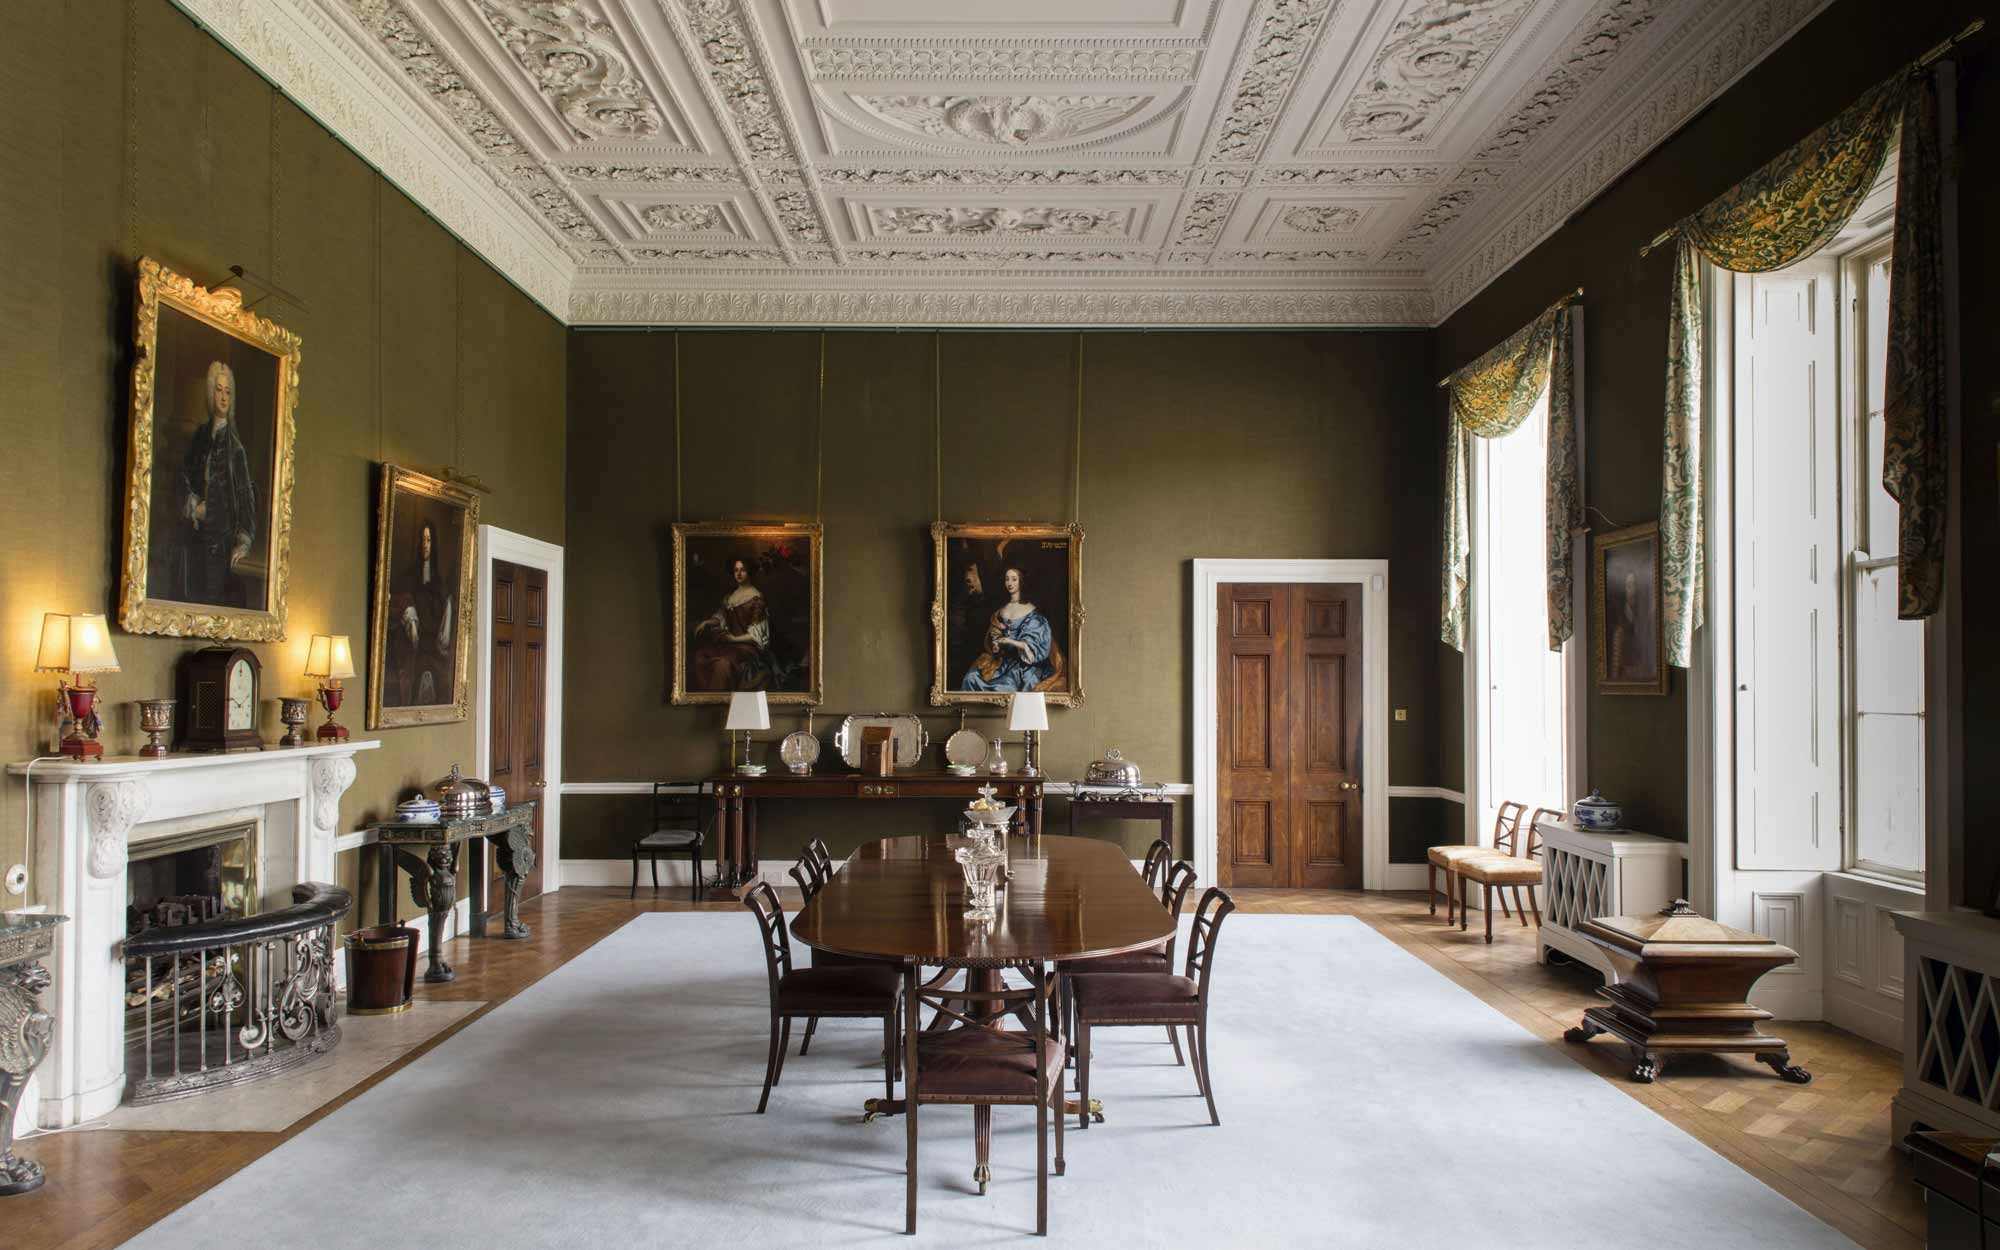 The dining room at Emo Court.